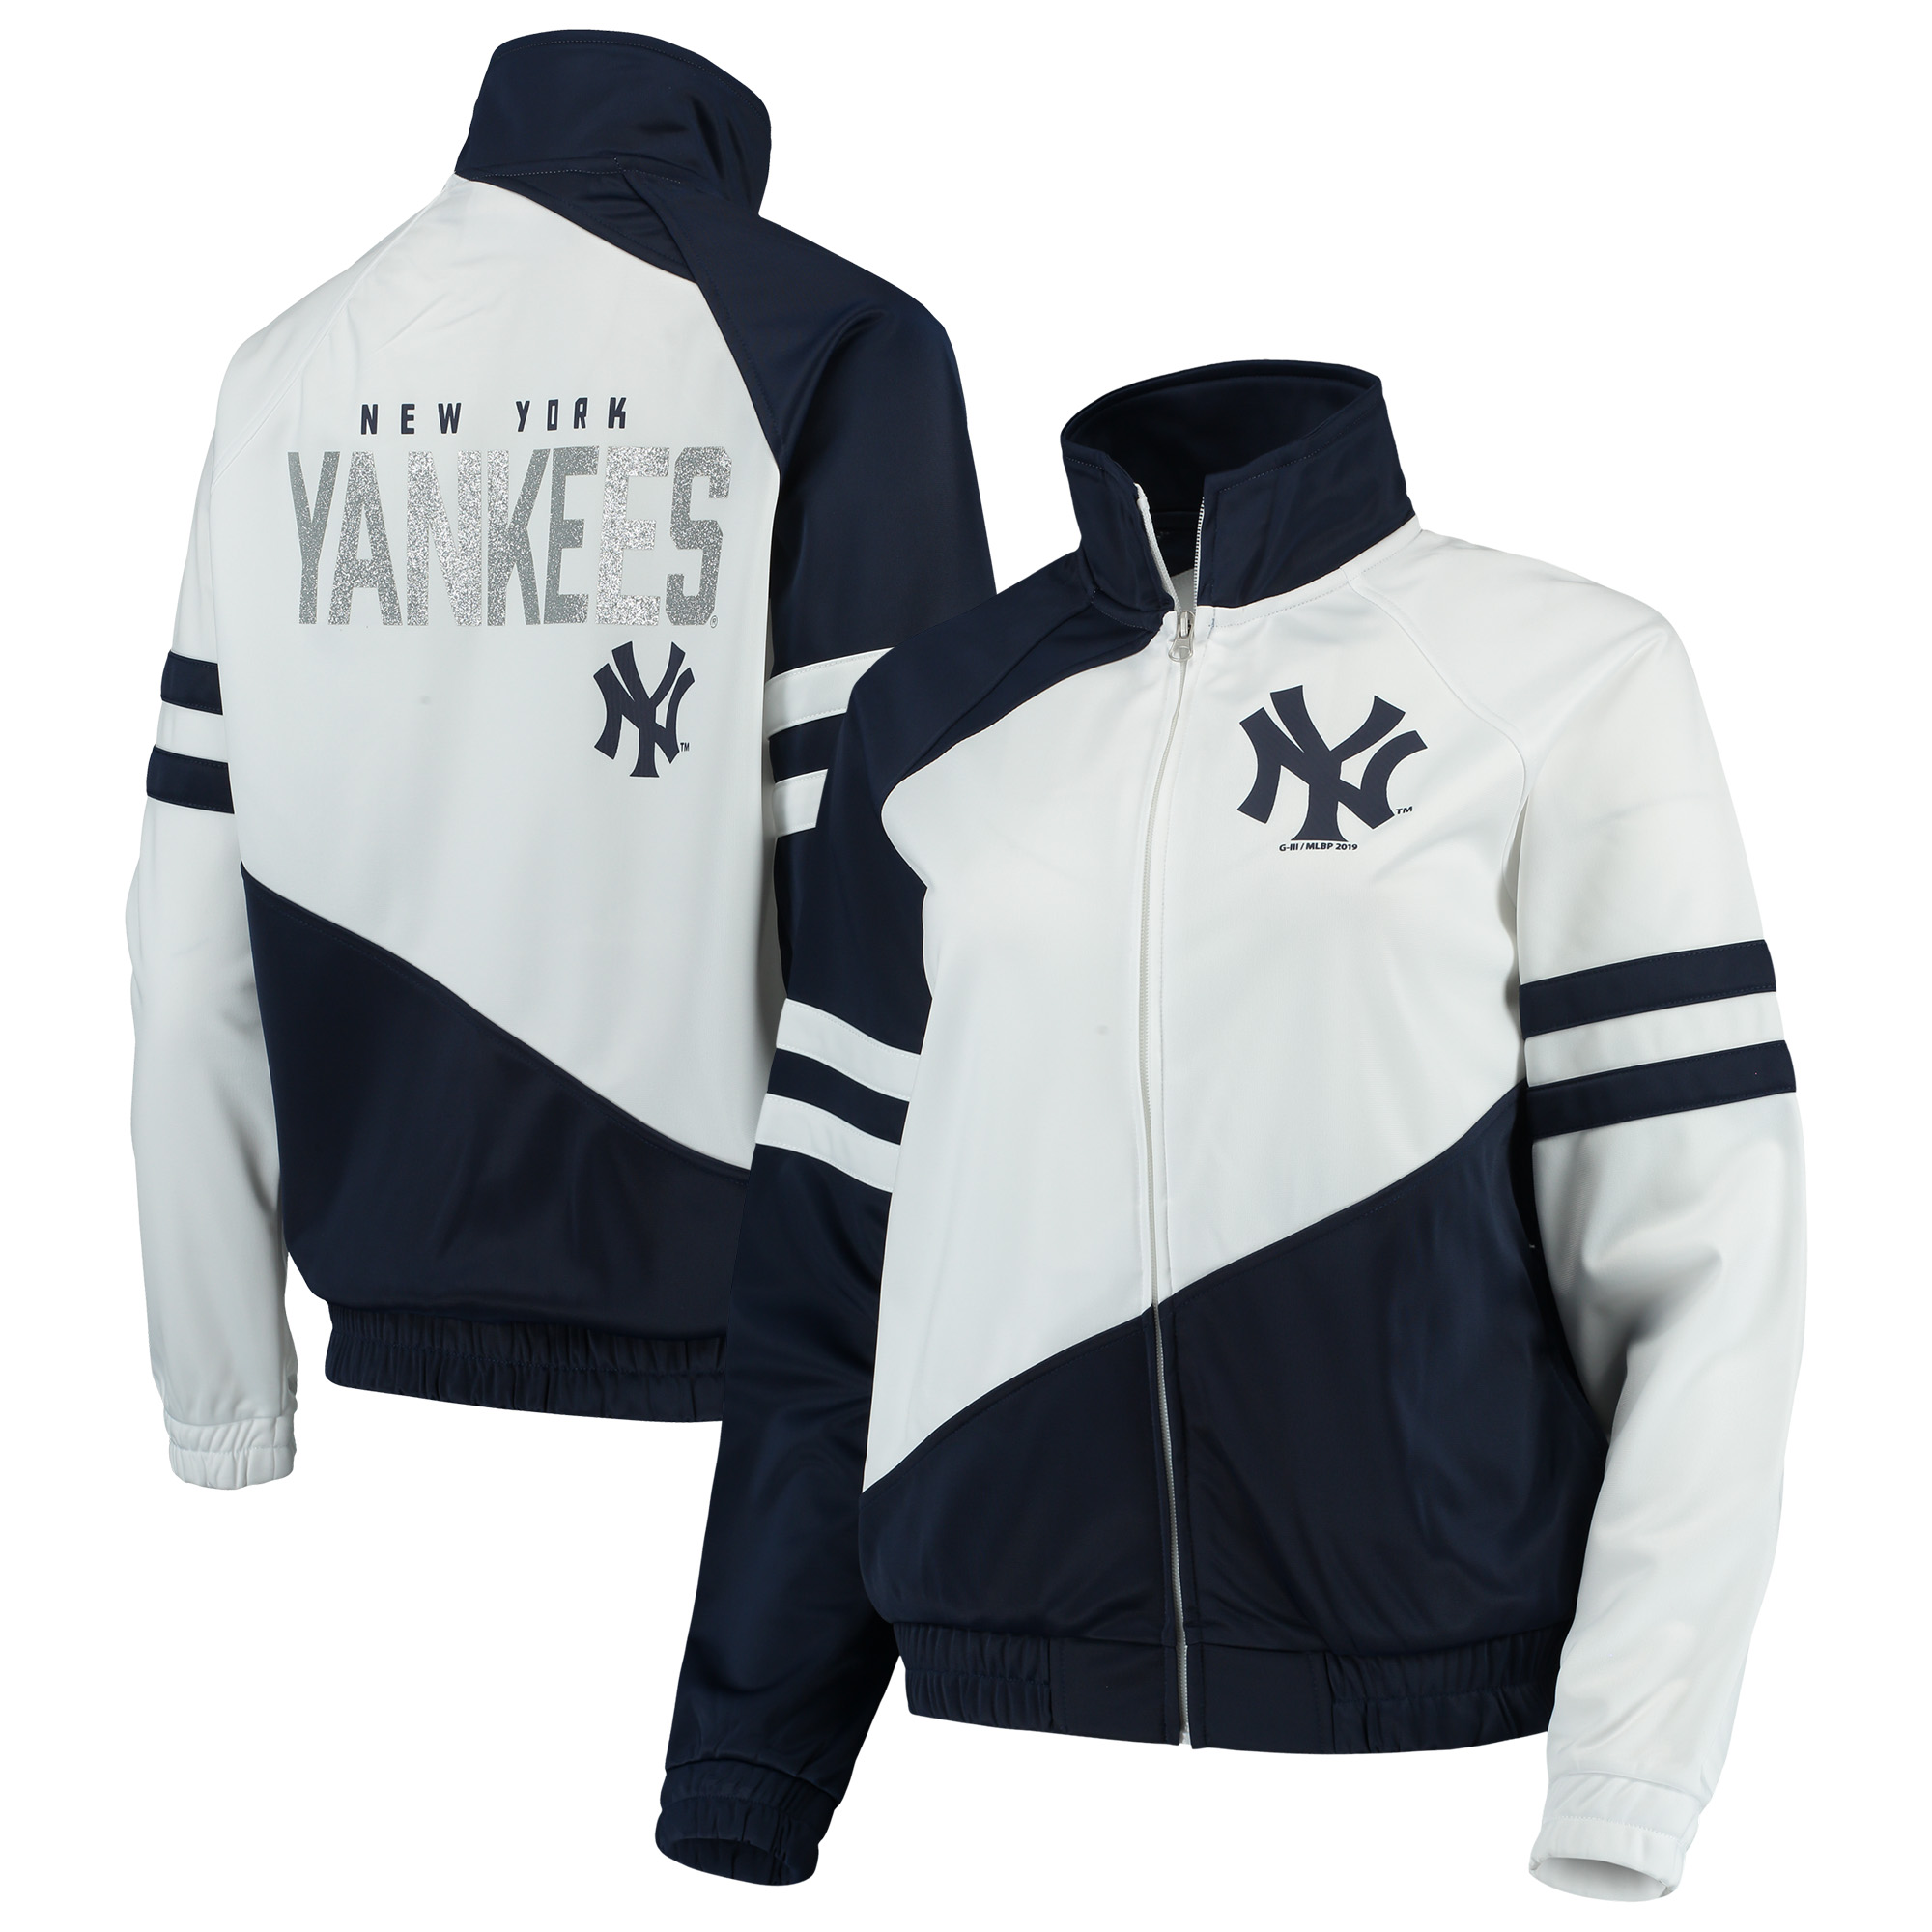 New York Yankees G-III 4Her by Carl Banks Women's Perfect Pitch Track Jacket - Navy/White